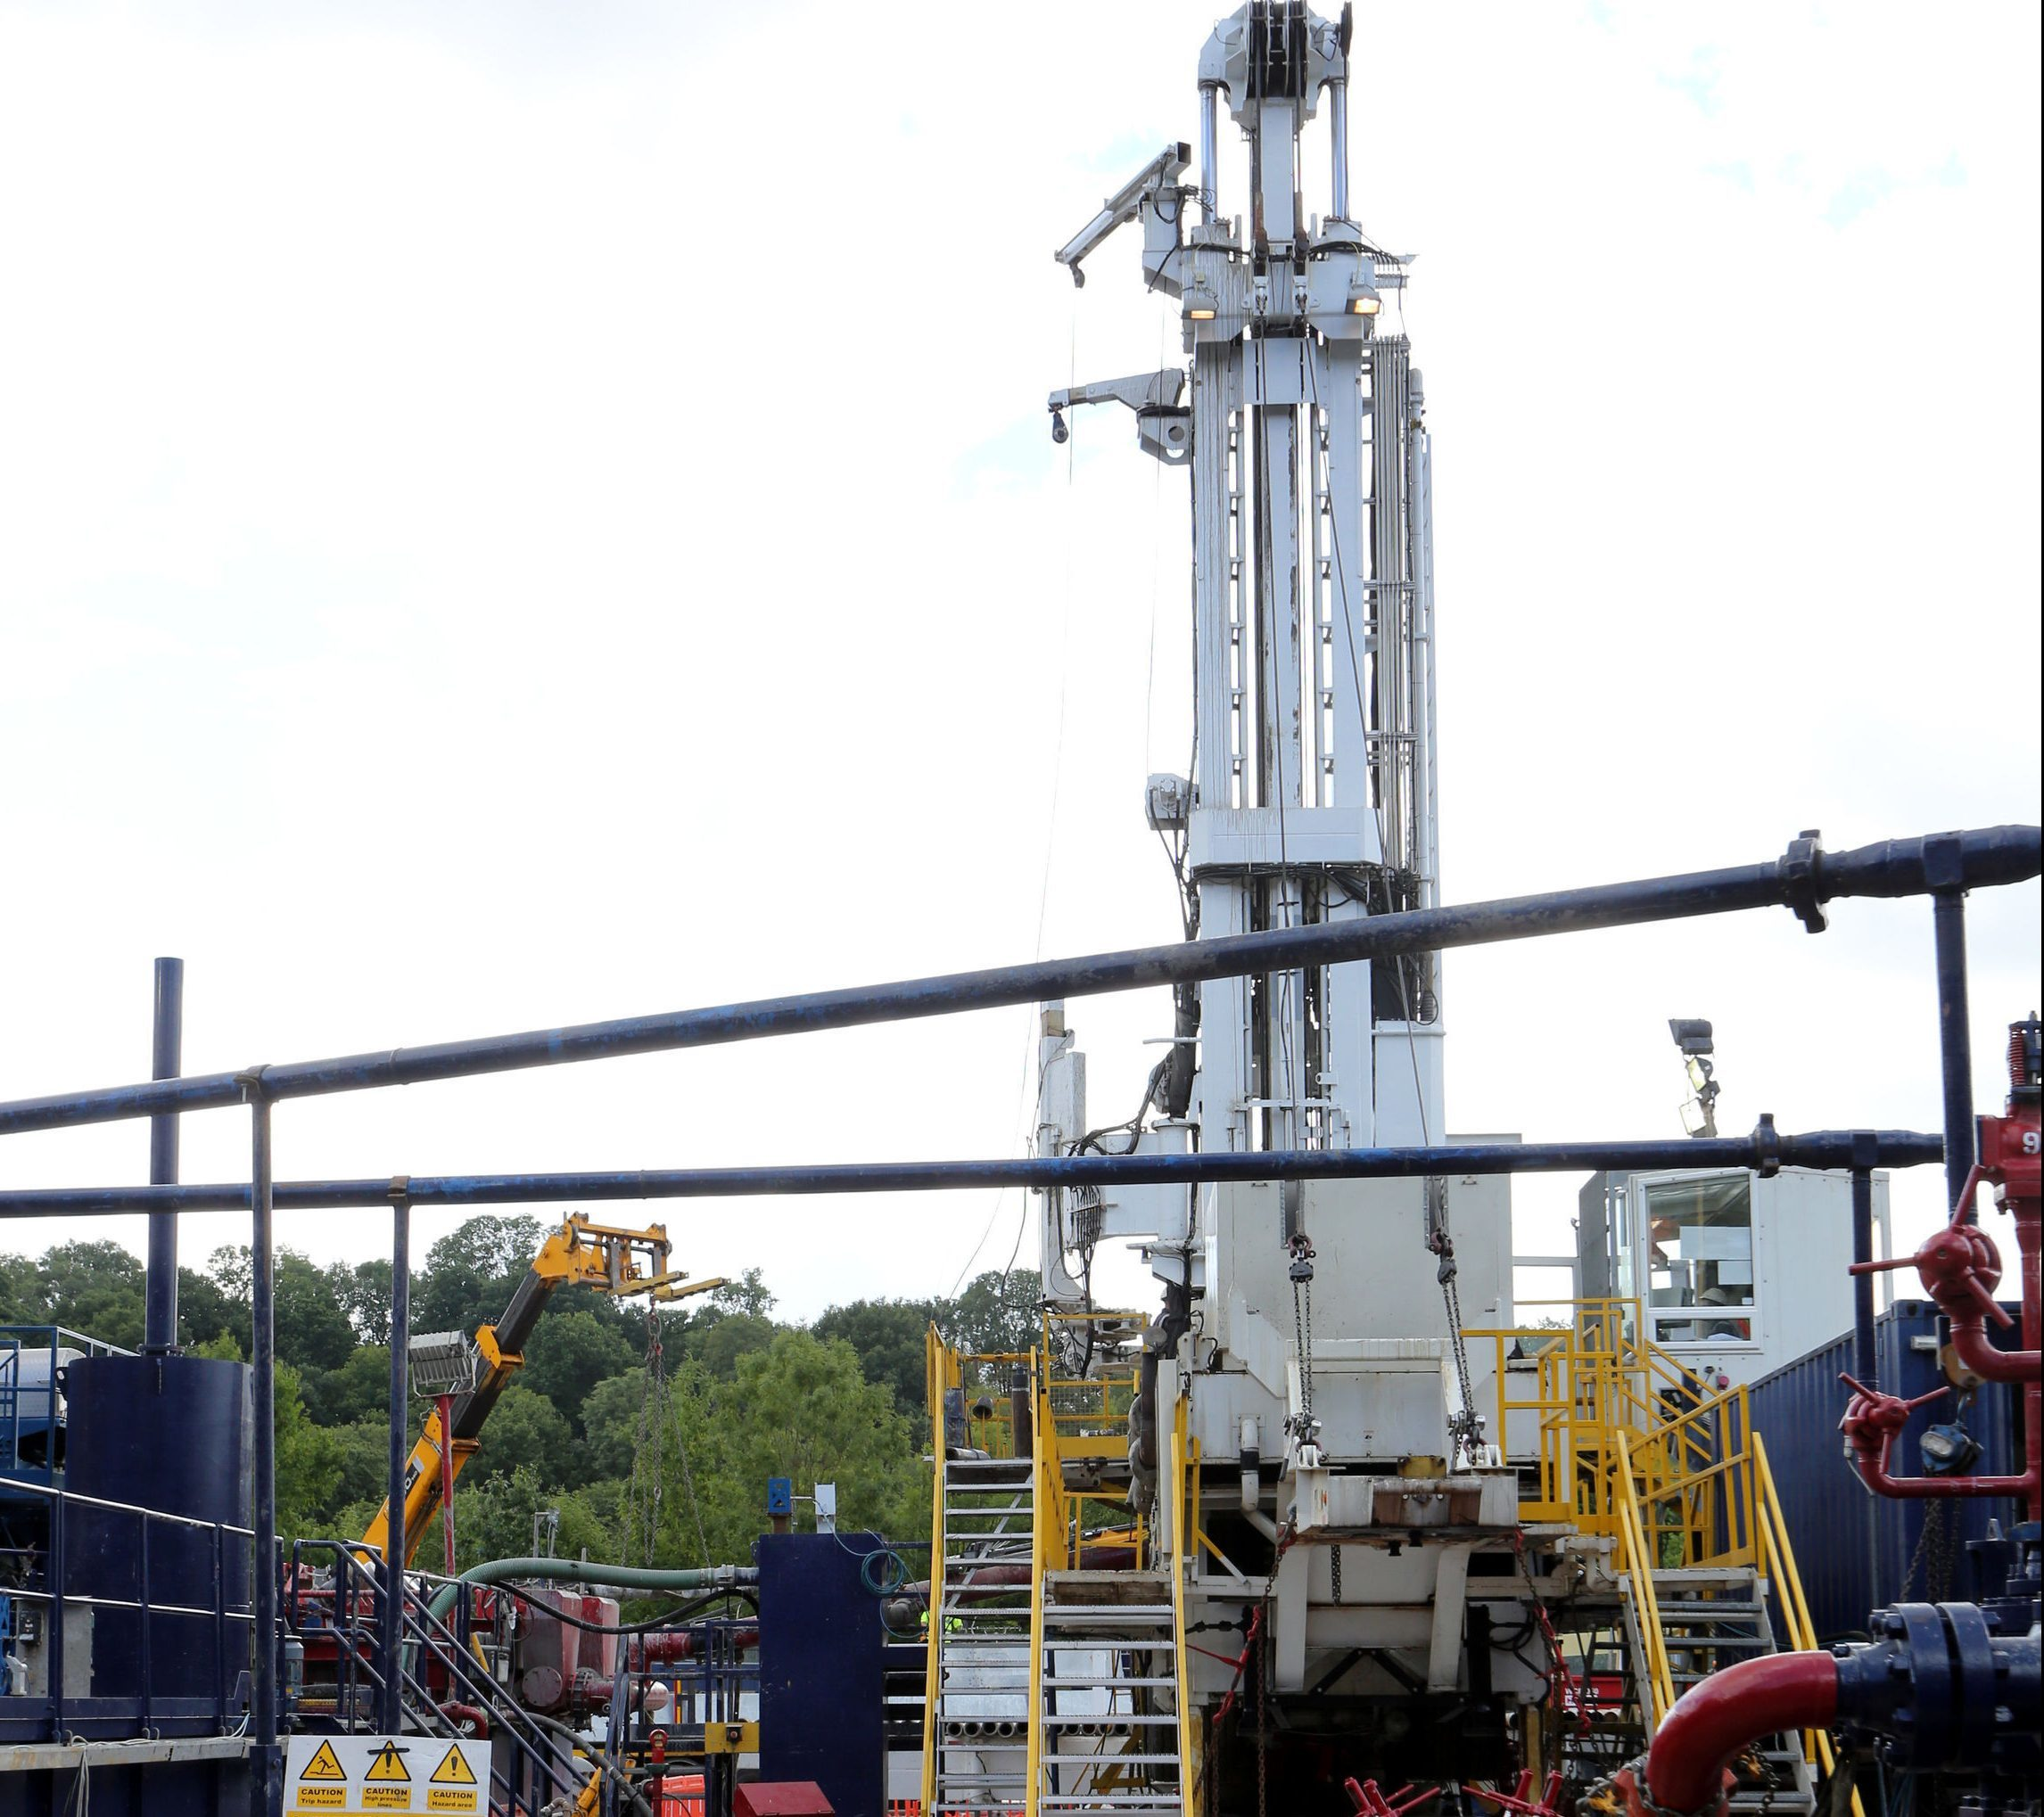 The Cuadrilla exploration drilling site in Balcombe, West Sussex. (Gareth Fuller/PA Wire)